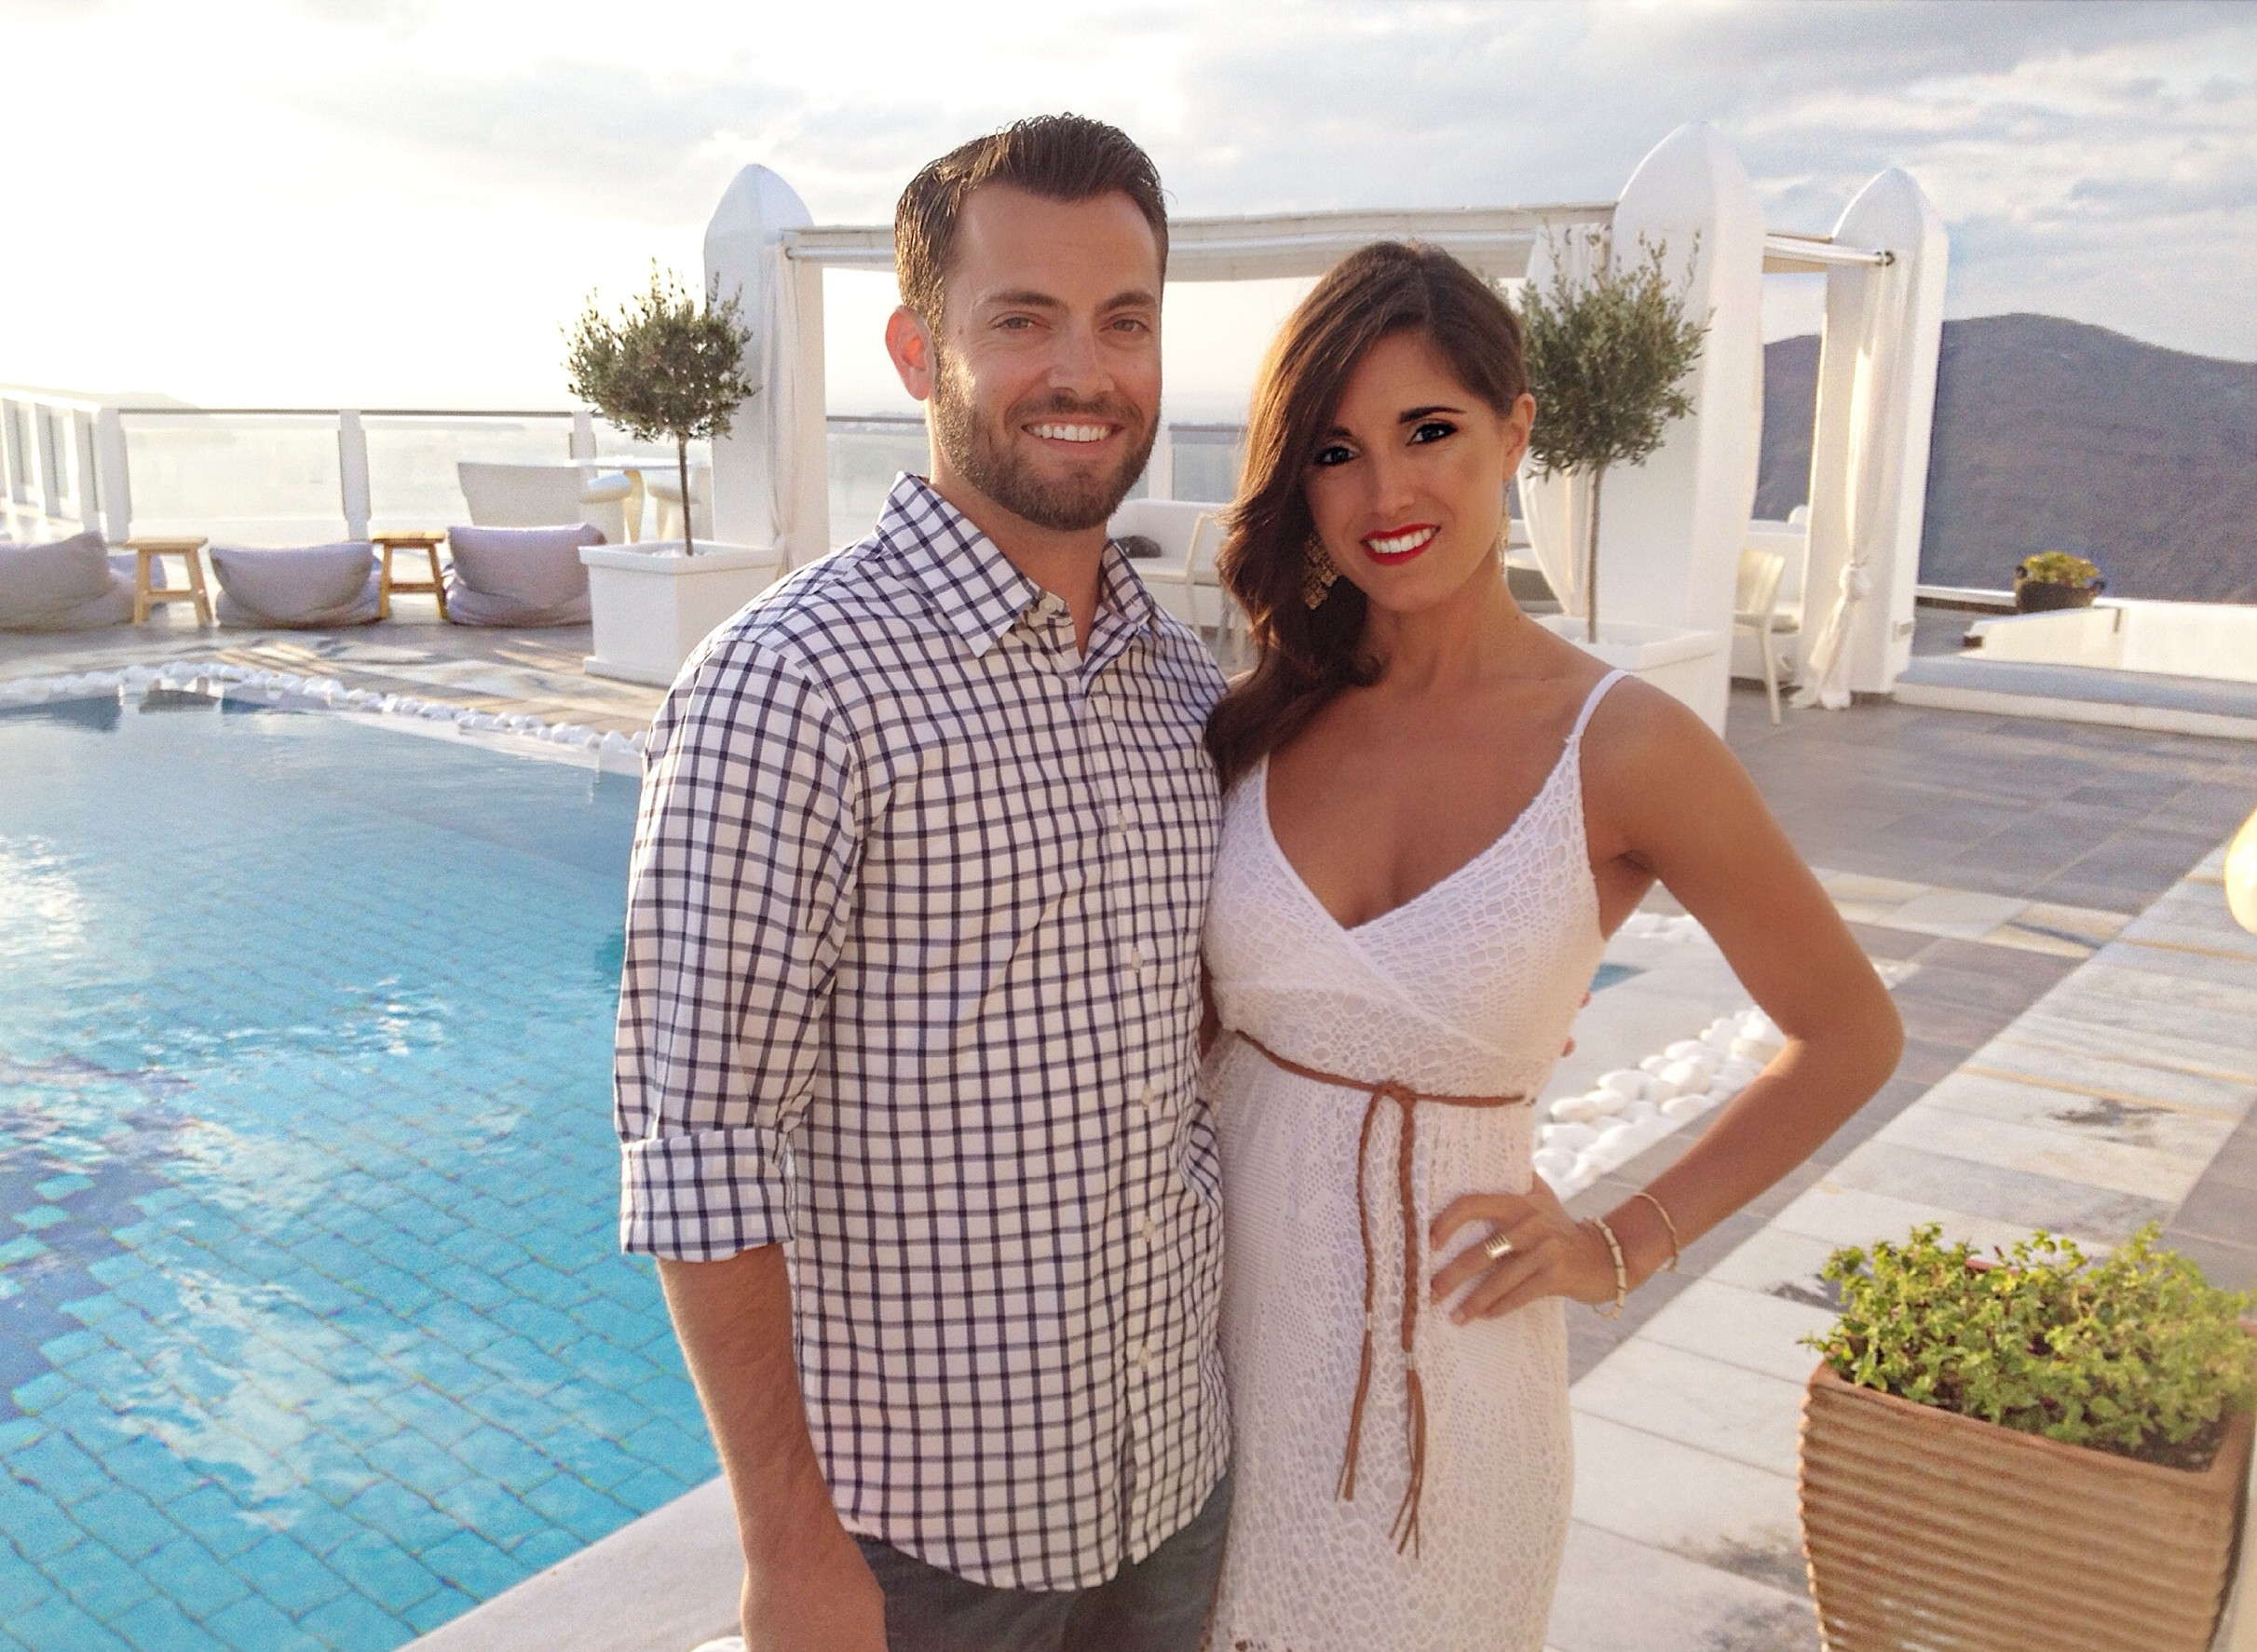 Image 2 of Jenna and Eric's Proposal in Greece